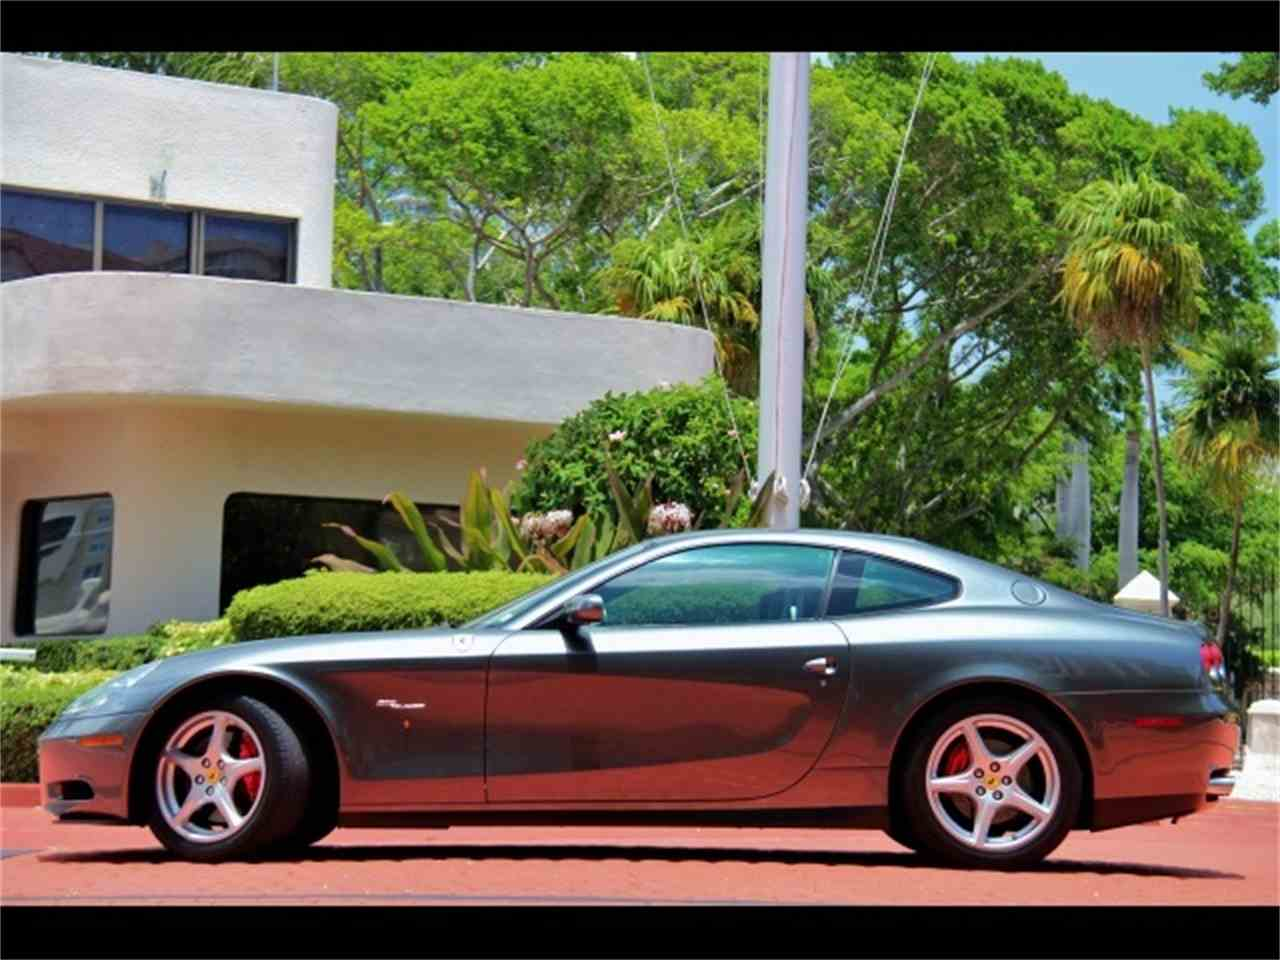 2006 ferrari 612 scaglietti for sale. Black Bedroom Furniture Sets. Home Design Ideas